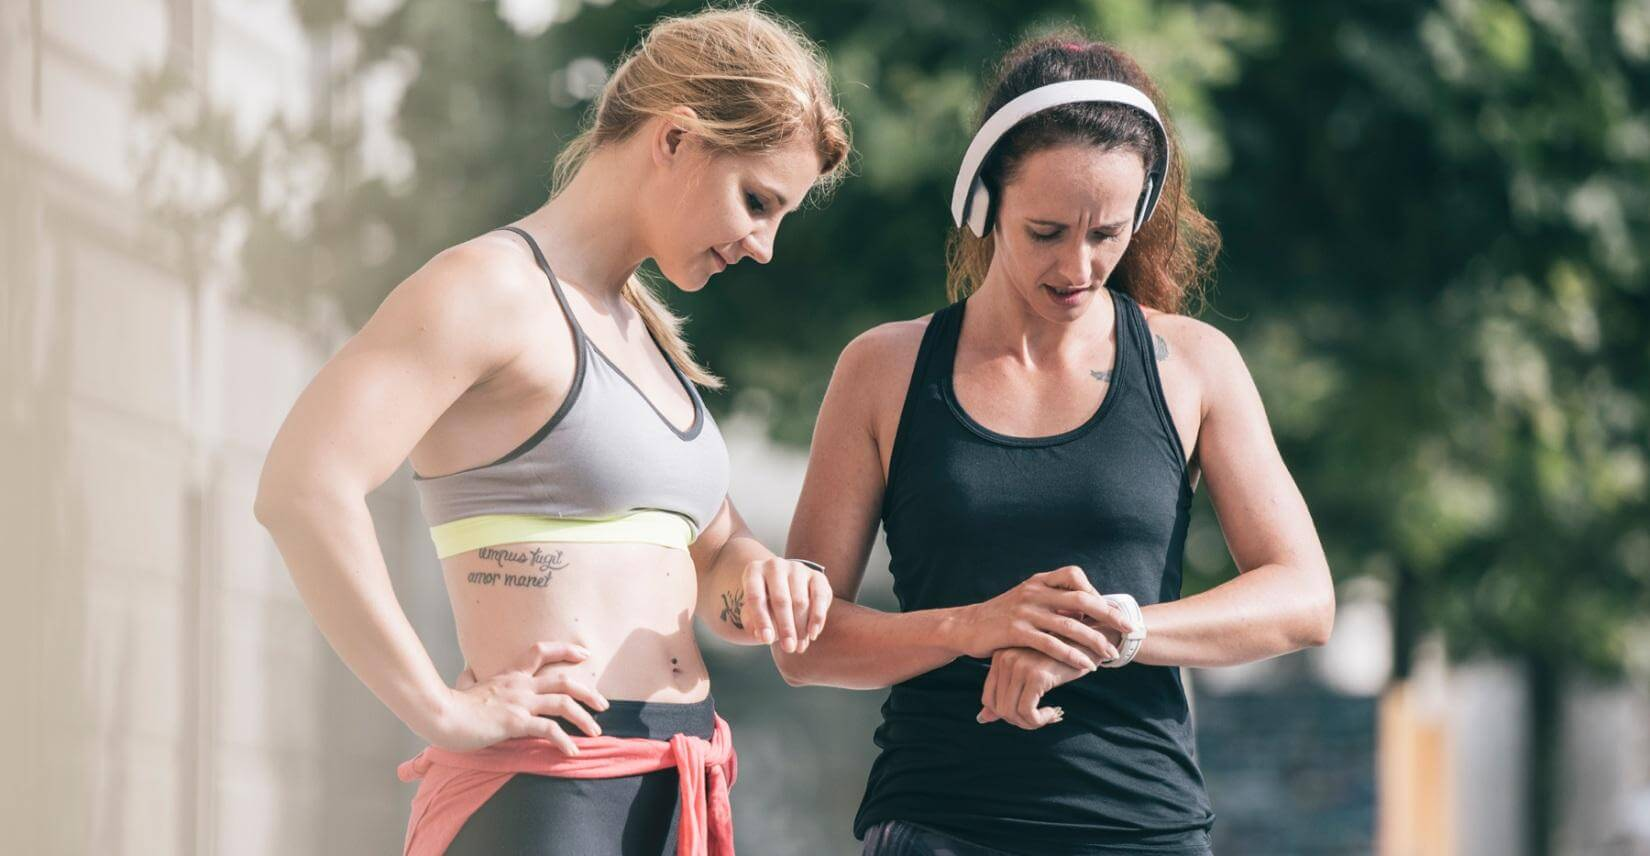 Handy Points To Consider When Using A Heart Rate Monitor During Exercise